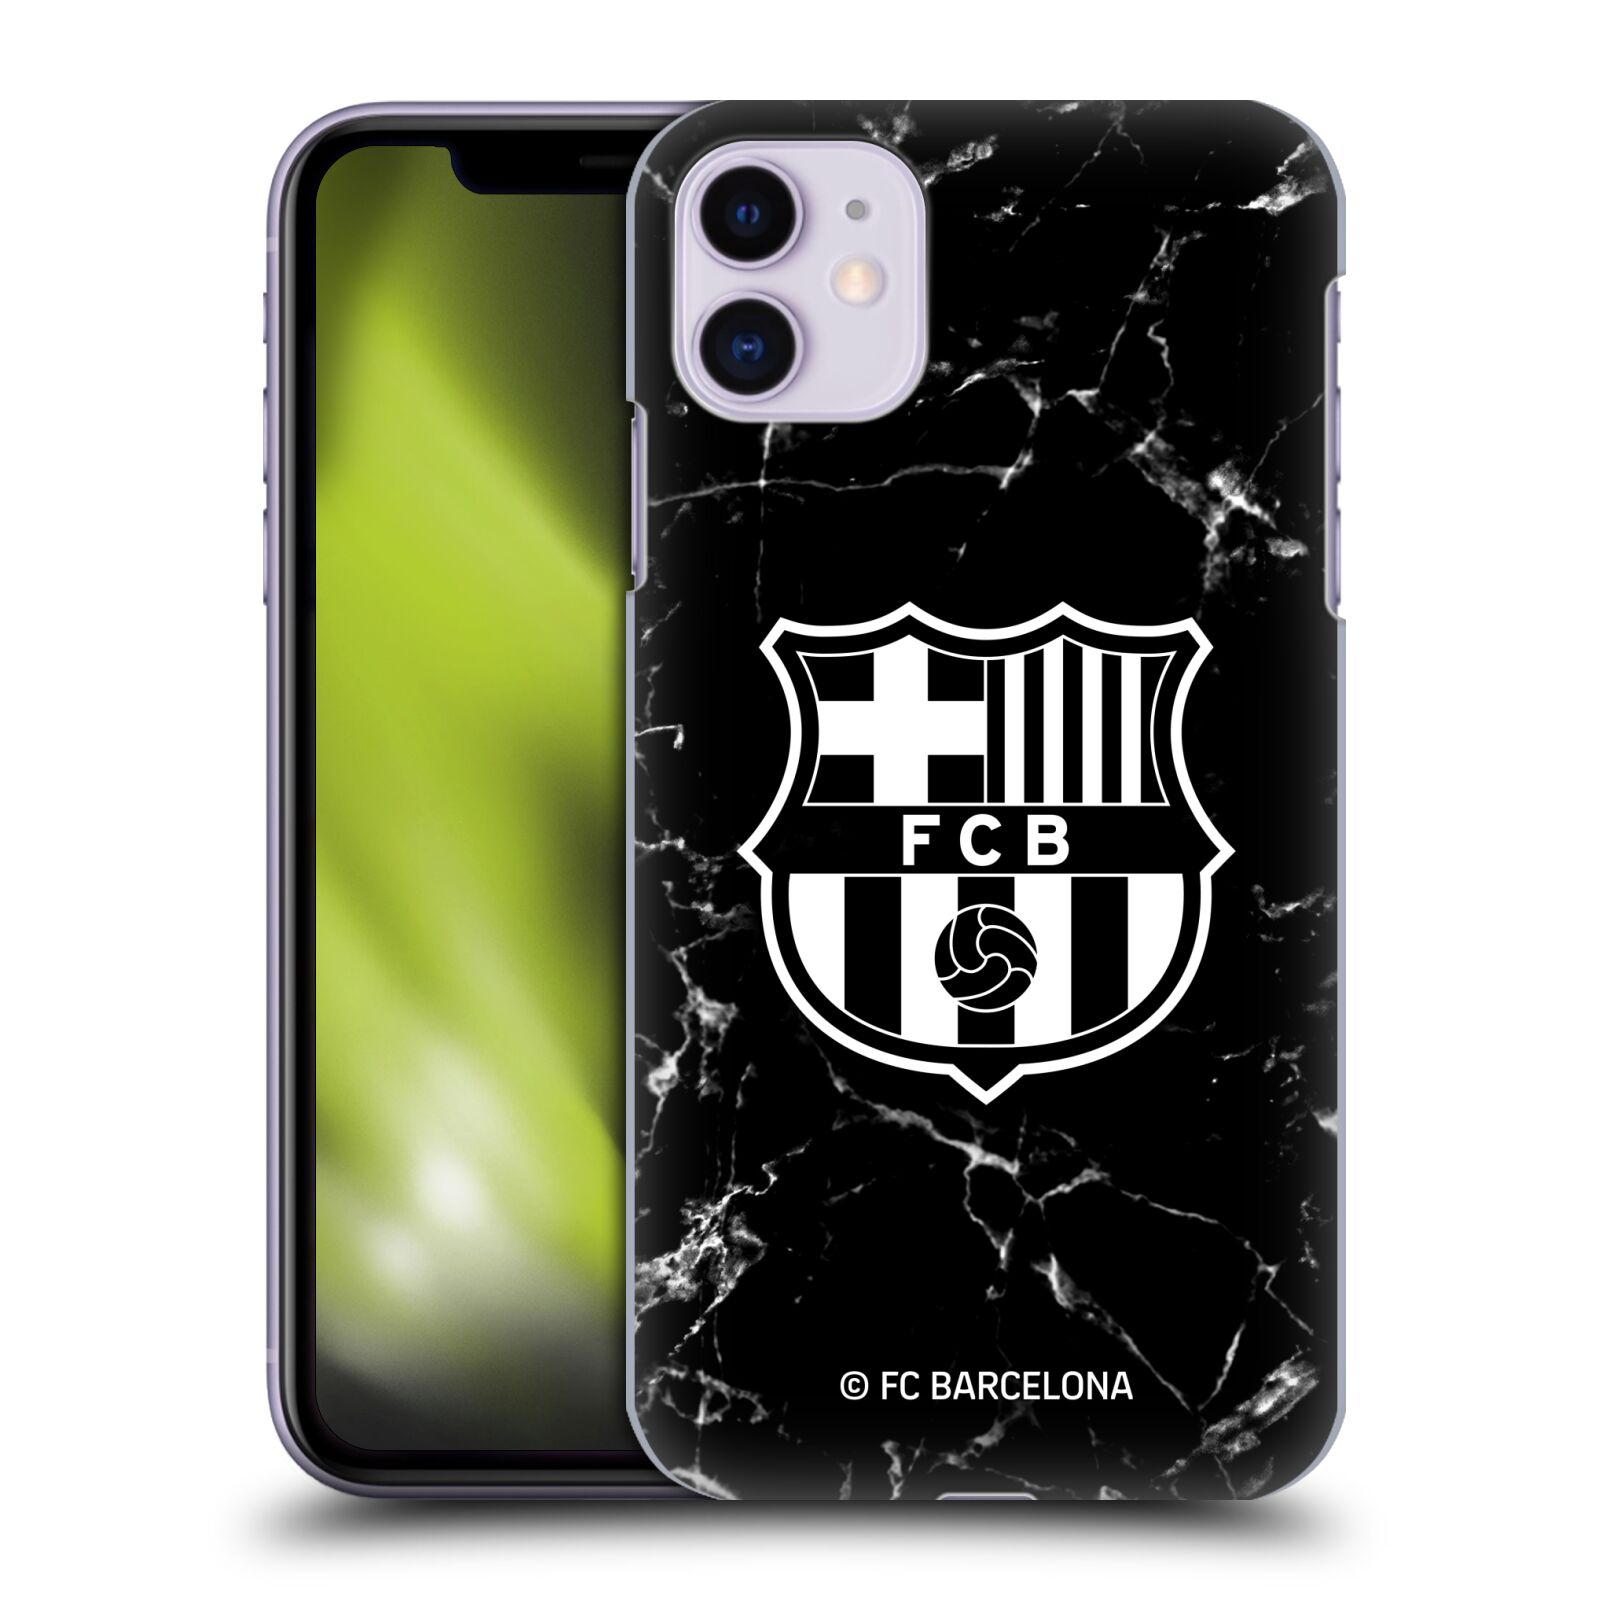 Official FC Barcelona 2019/20 Crest Patterns Black Marble Case for Apple iPhone 11